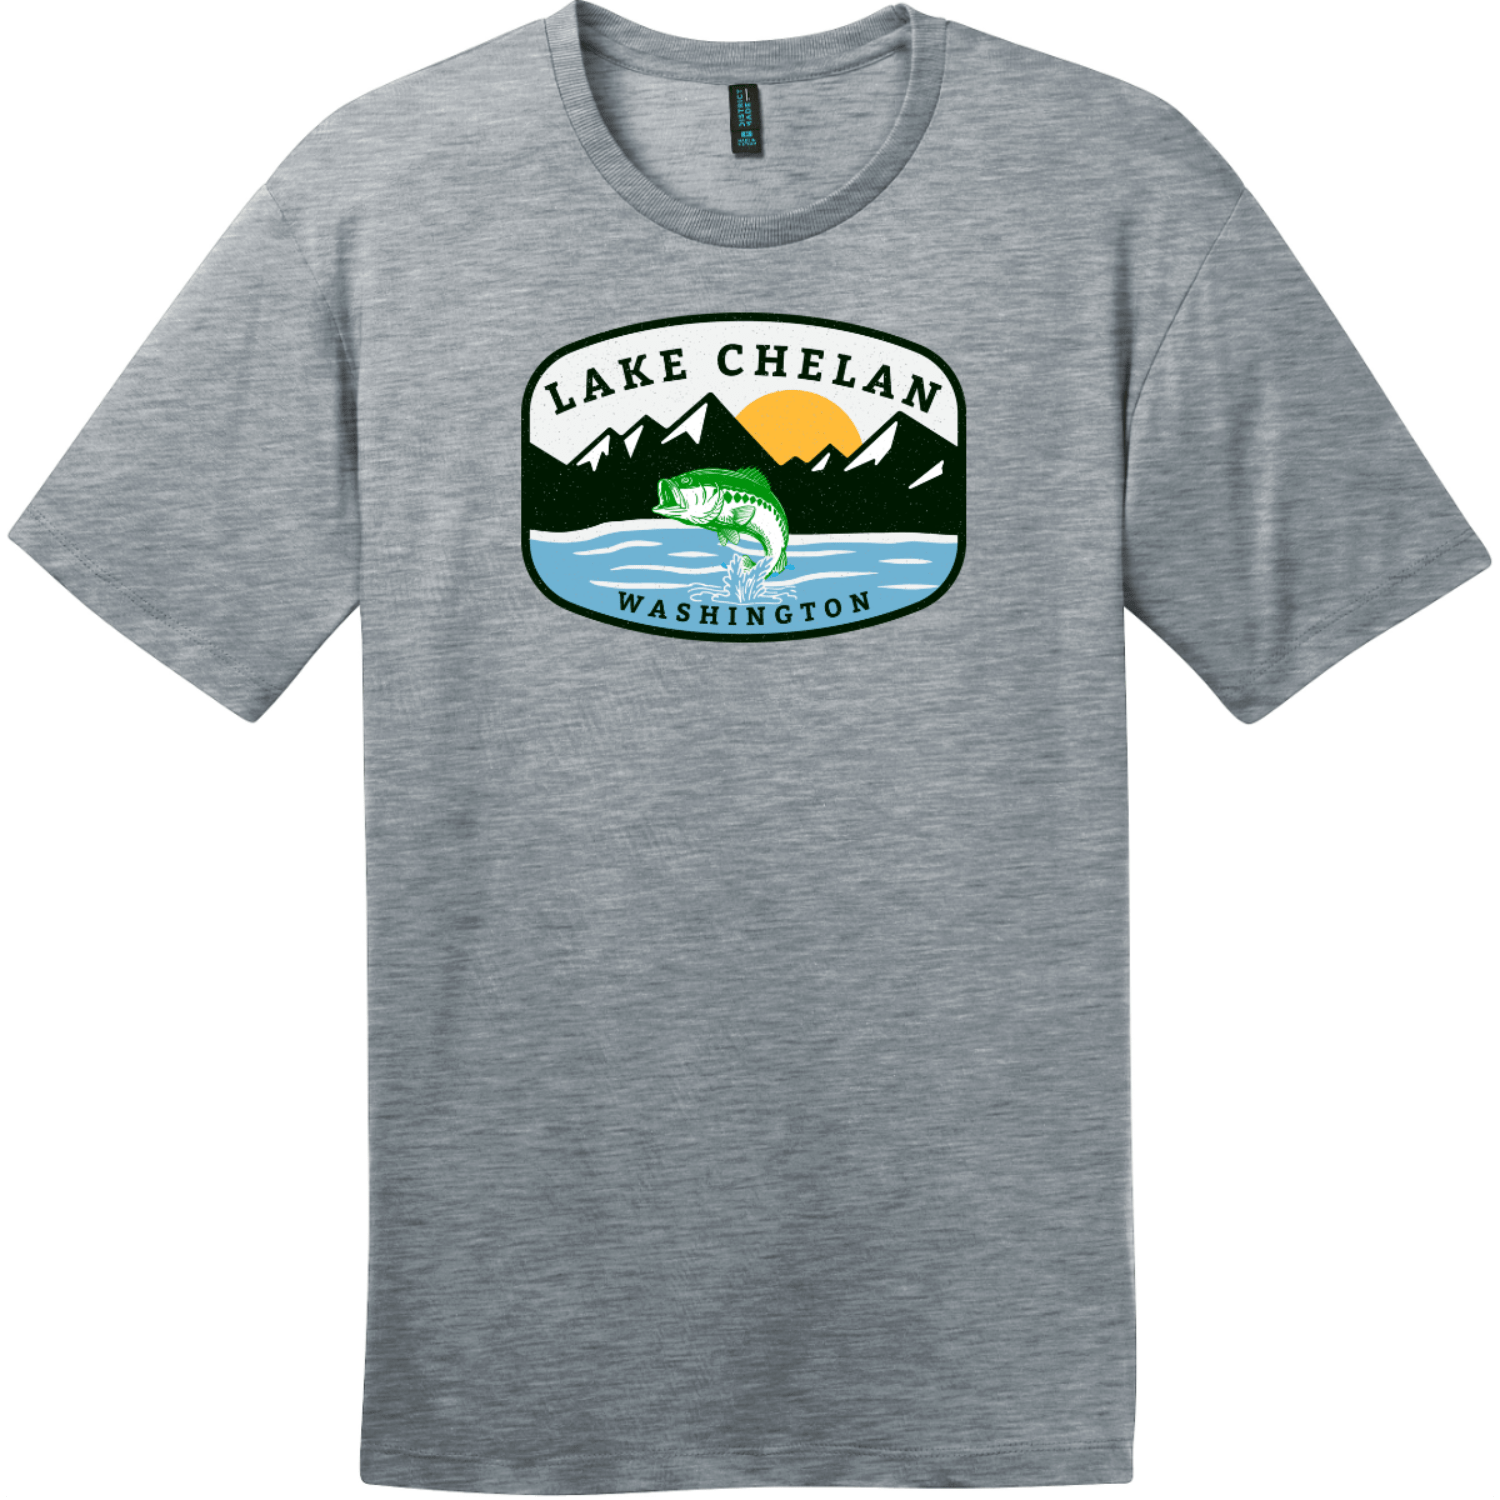 Lake Chelan Washington Fishing T-Shirt Heathered Steel District Perfect Weight Tee DT104